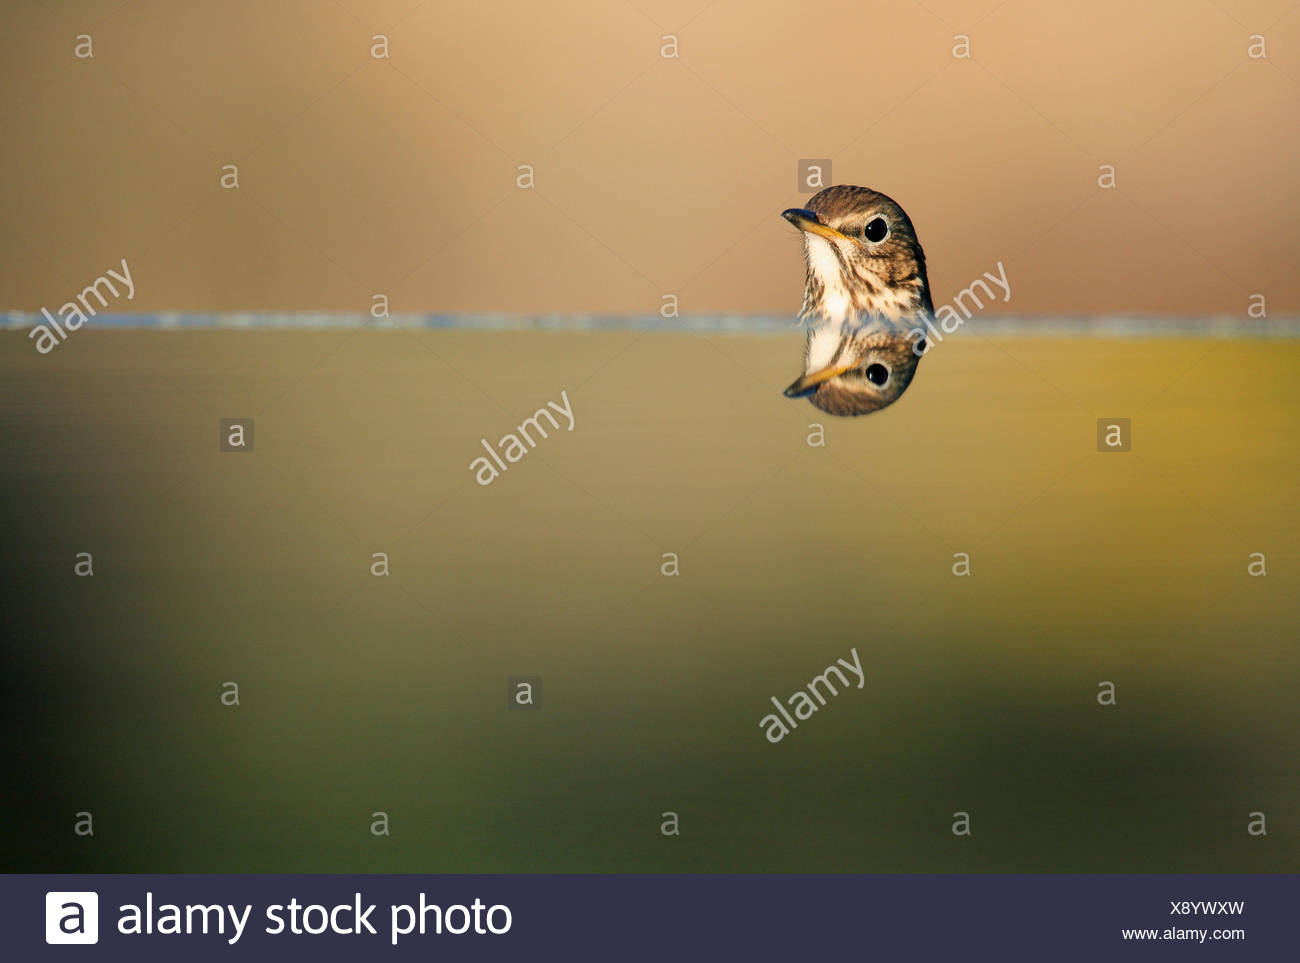 Song thrush {Turdus philomelos} head with reflection, Spain - Stock Image